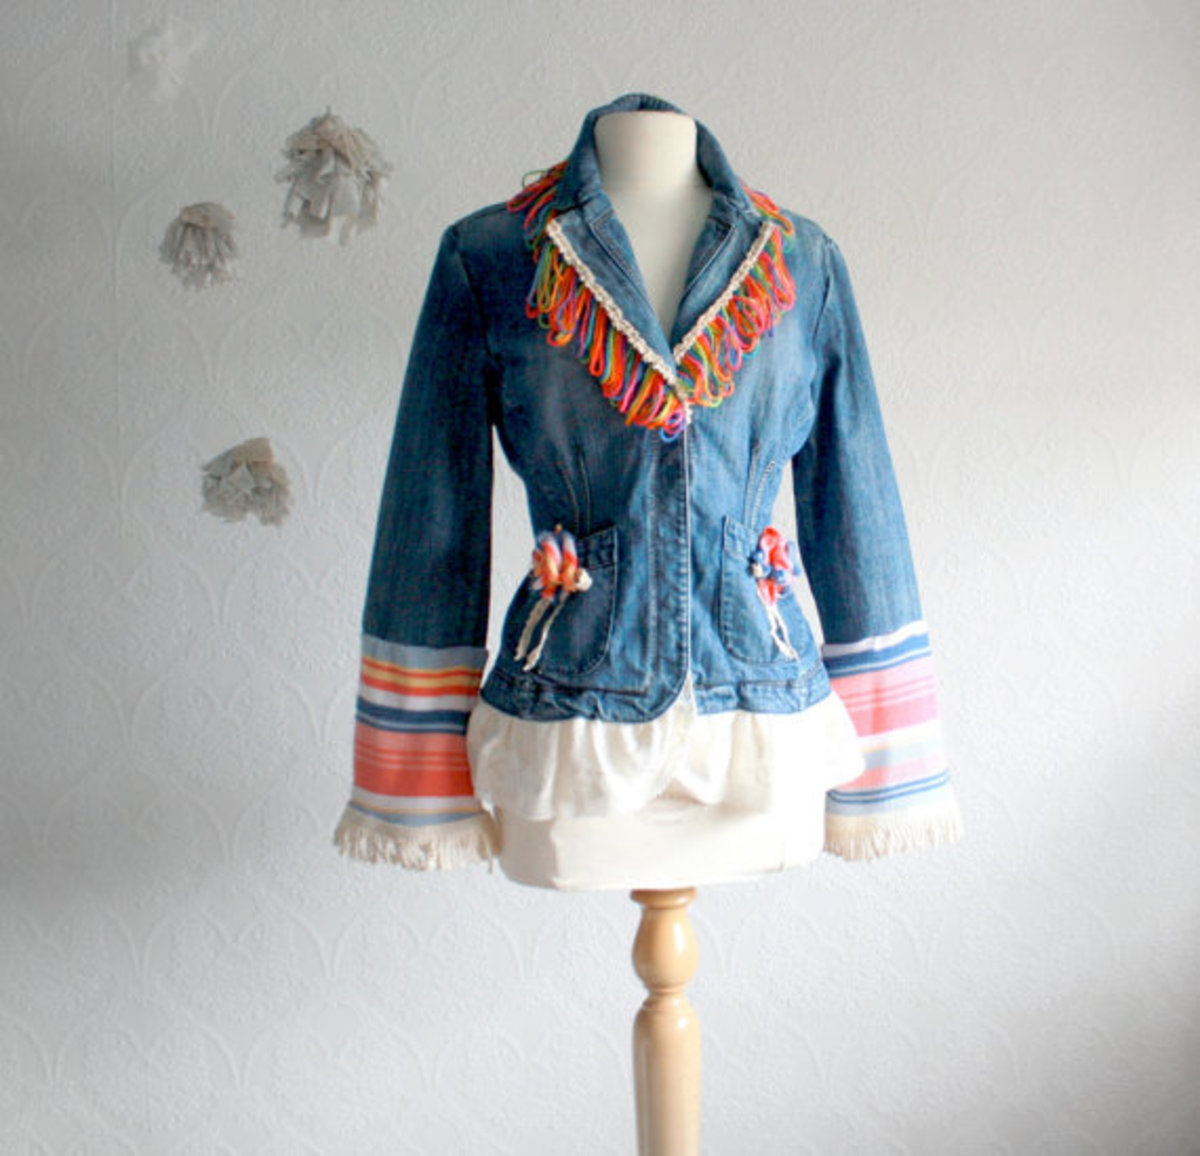 Ladies Bohemian Jacket Fringe Blazer Denim Multicolor Boho Shabby Chic Women's Upcycled Clothing